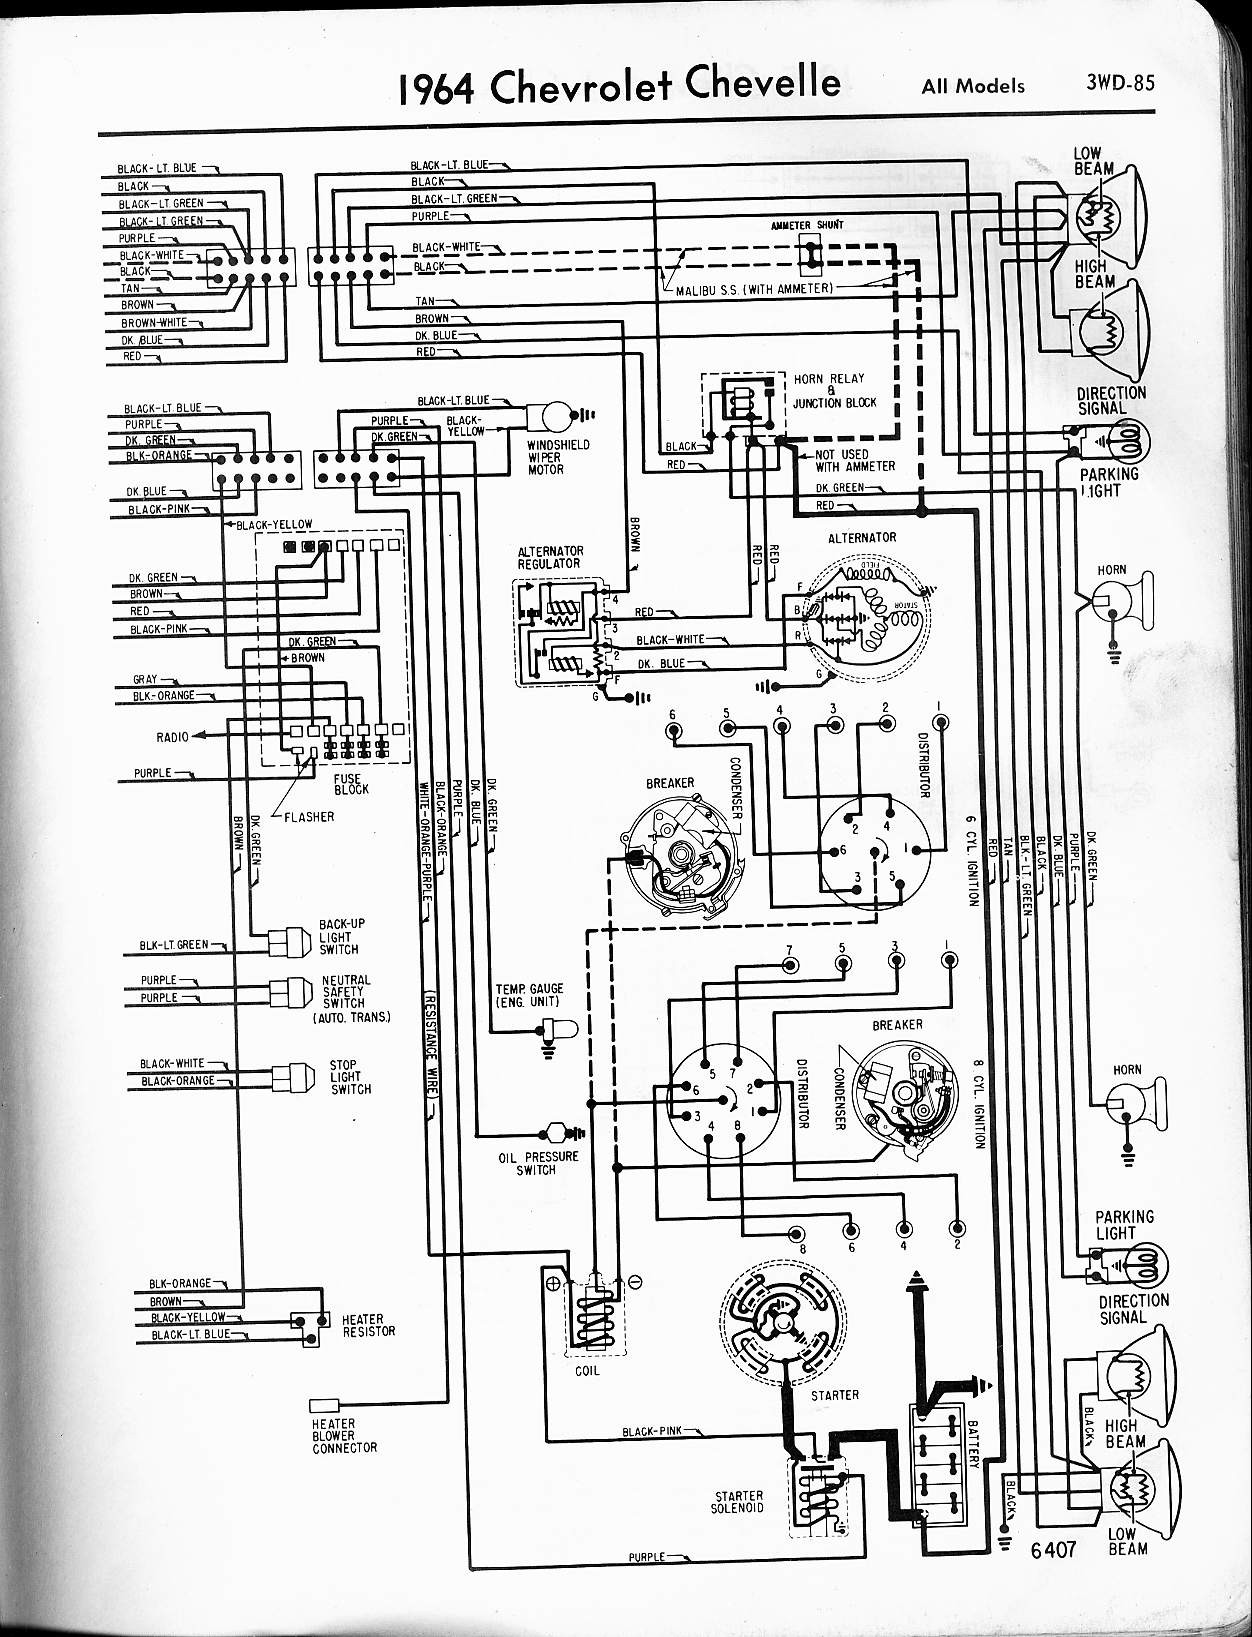 1972 chevelle ac wiring diagram fender stratocaster 1967 harness library